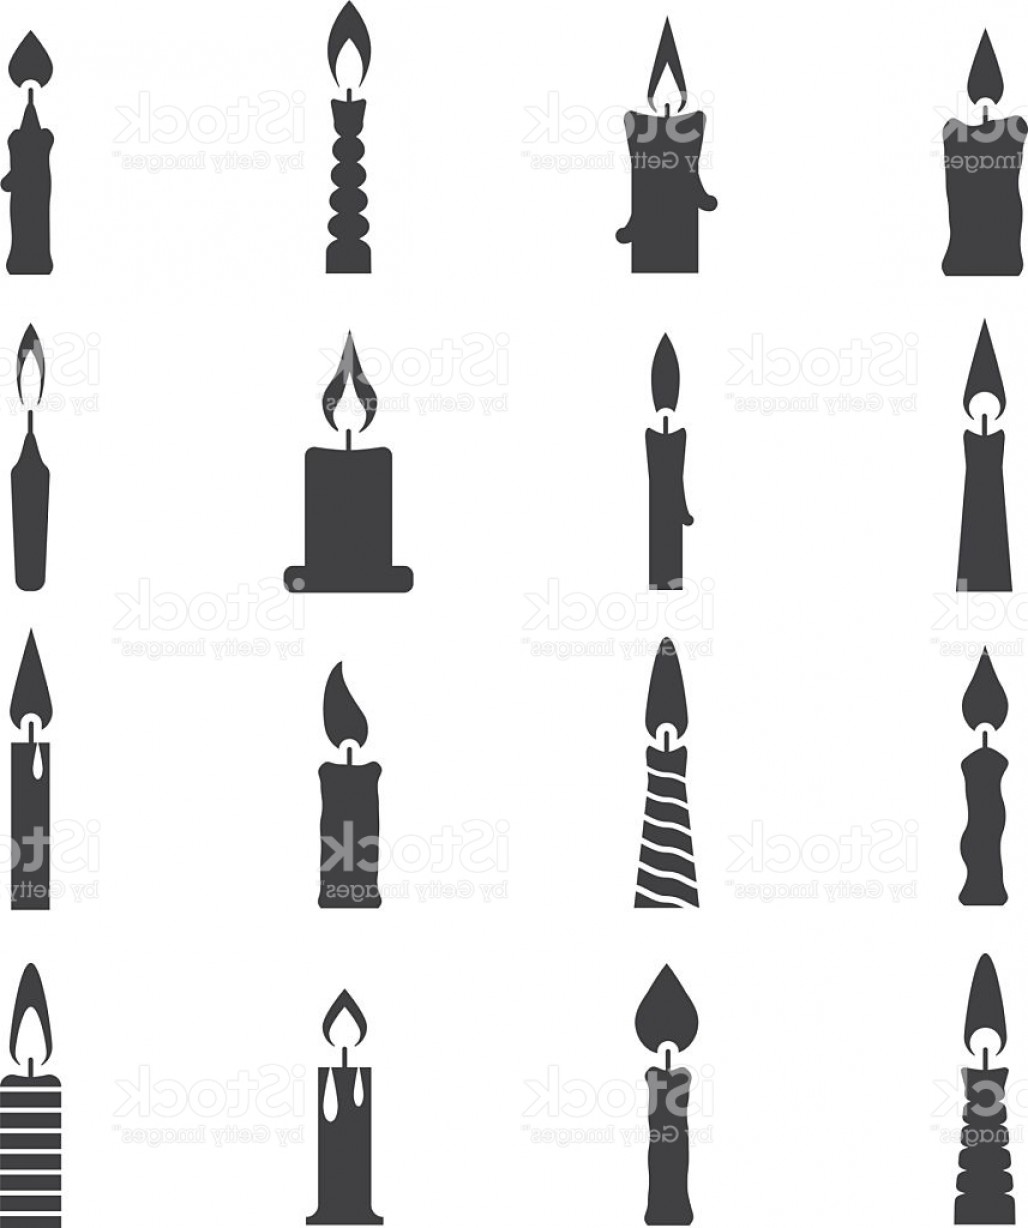 Birthday Candle Vector Art: Birthday Candle Black Vector Icons Isolated On White Gm